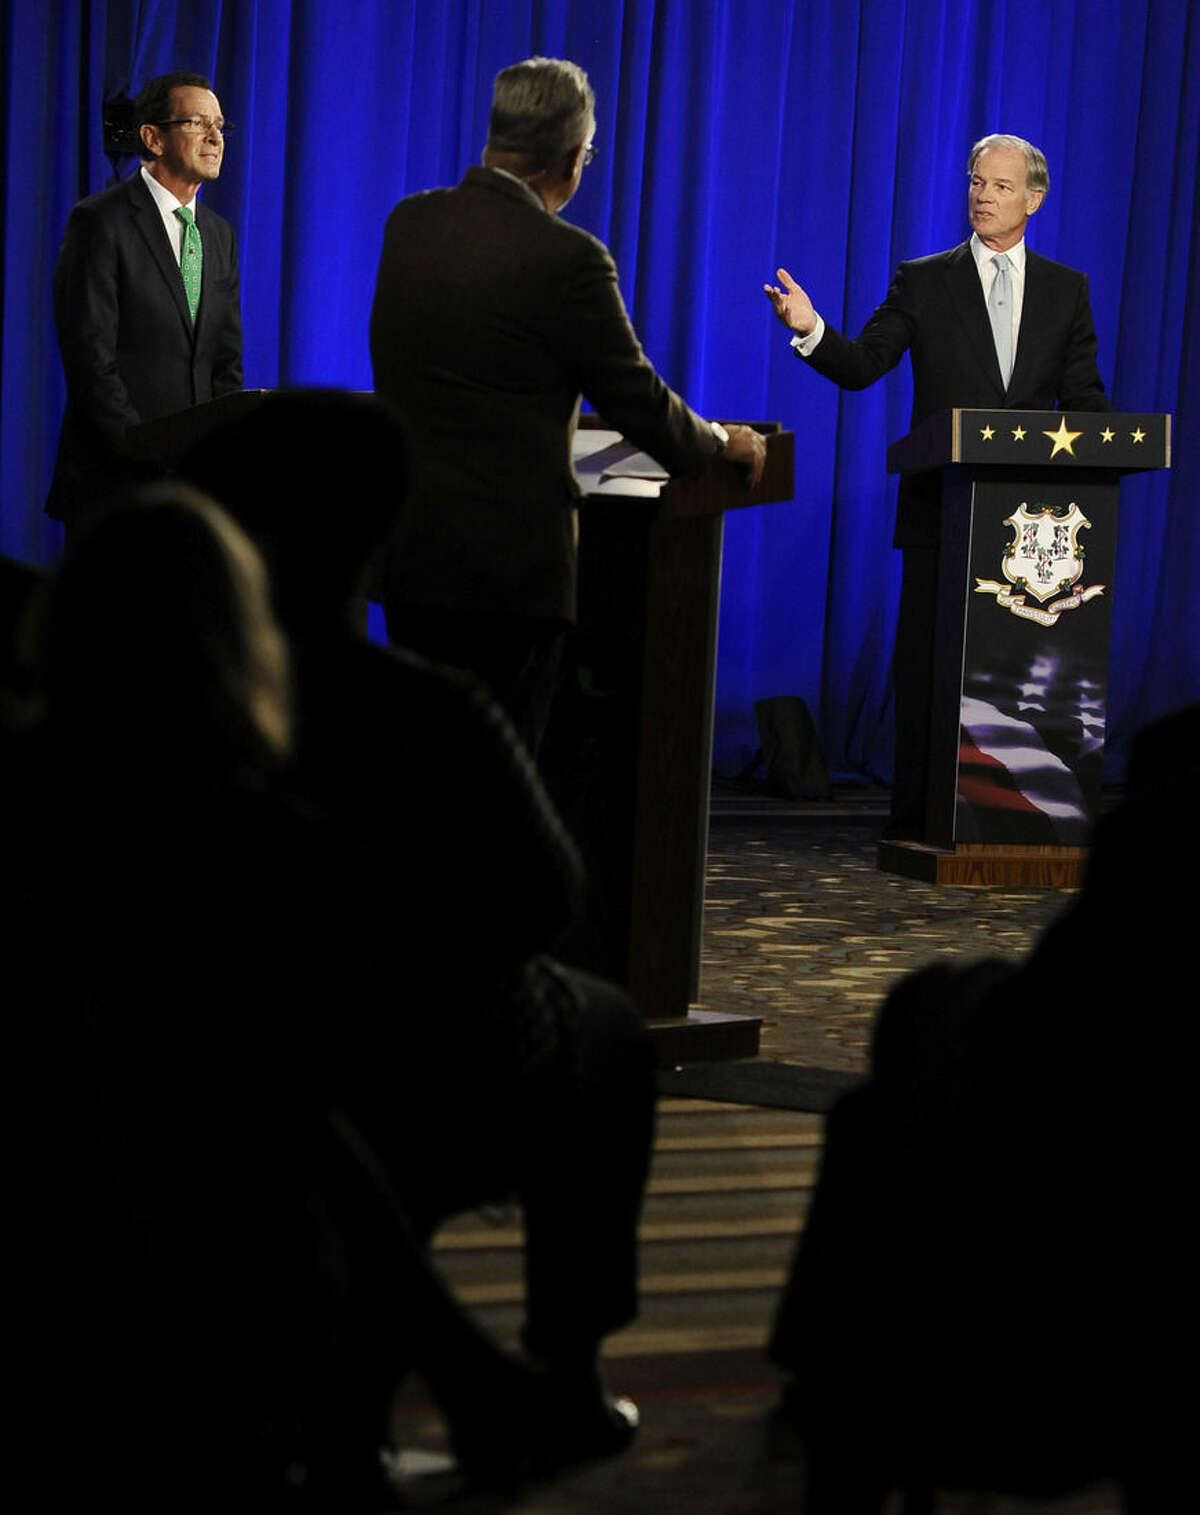 Republican candidate for governor Tom Foley, right, gestures as incumbent Democrat Gov. Dannel P. Malloy, left, listens, during a debate, Thursday, Oct. 9, 2014, in Hartford, Conn. (AP Photo/Jessica Hill)